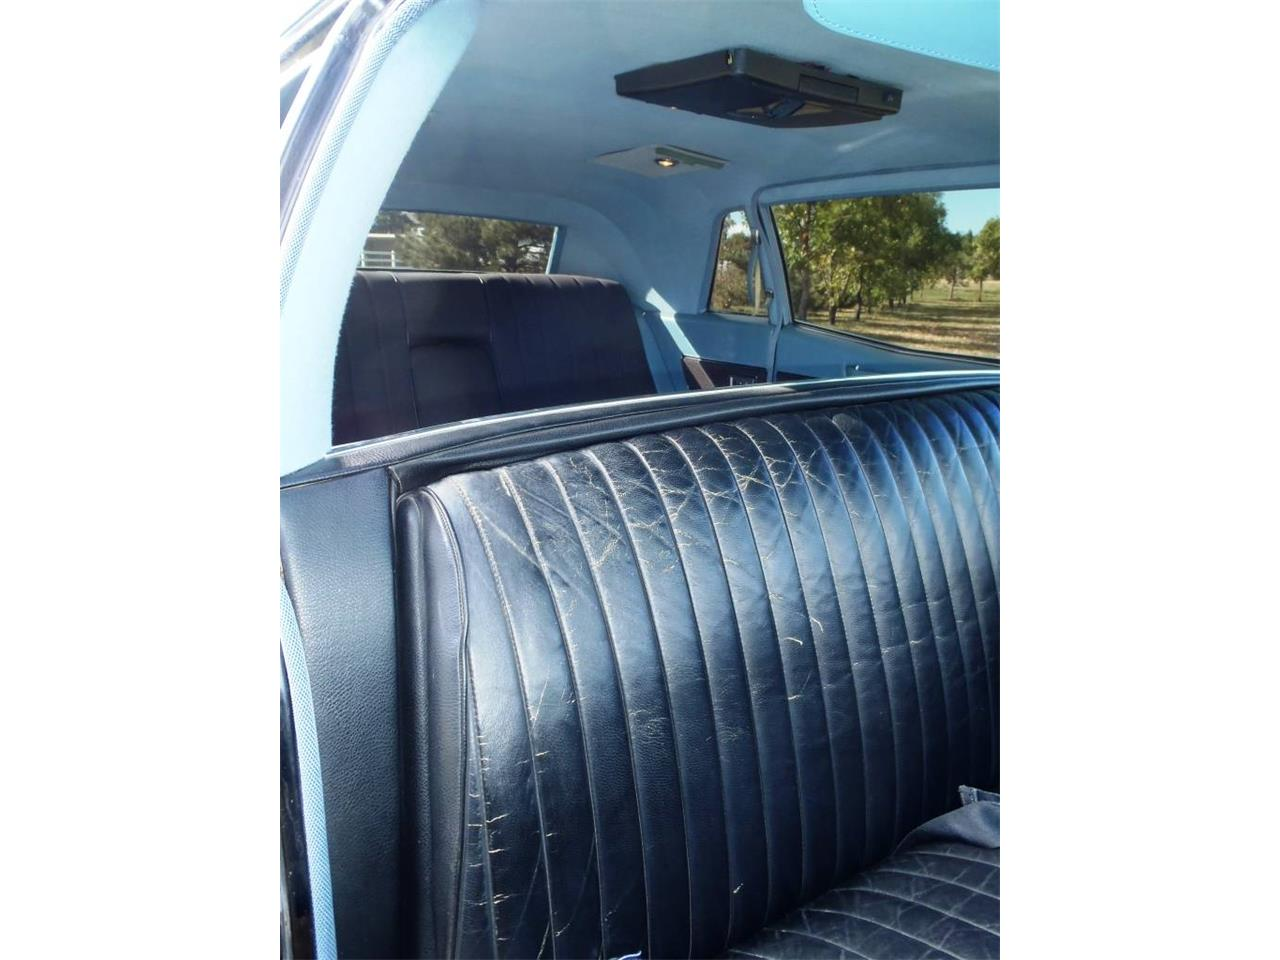 Large Picture of '67 Cadillac Fleetwood Limousine Offered by a Private Seller - OD55